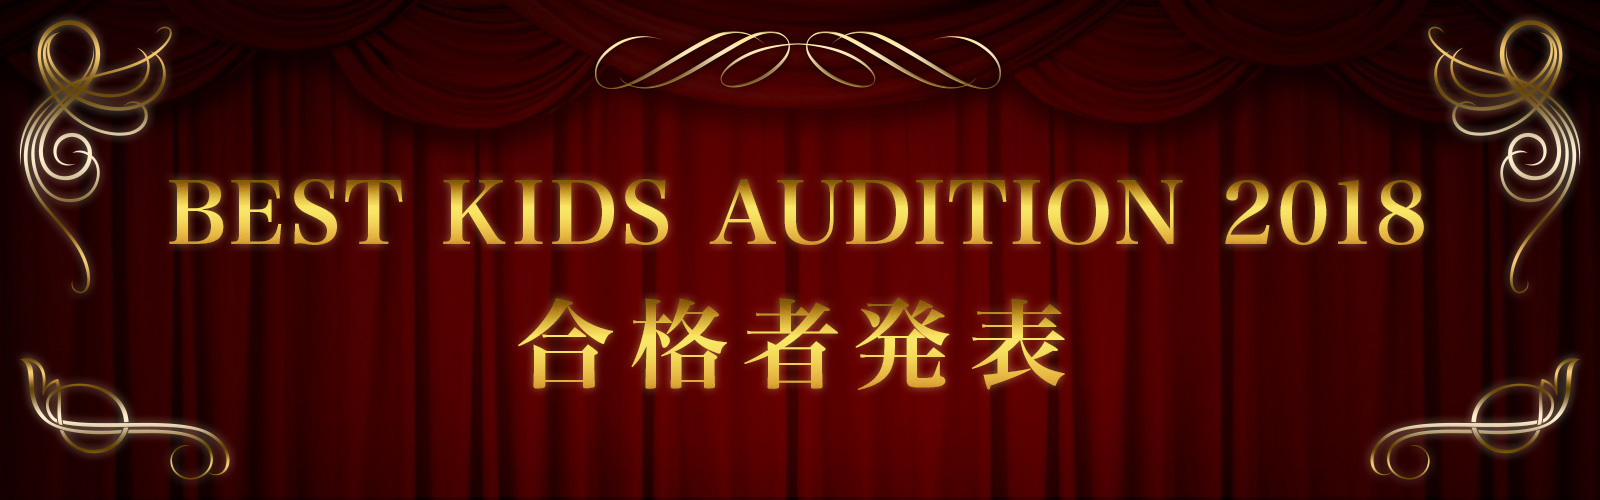 BEST KIDS AUDITION 2018 合格者発表